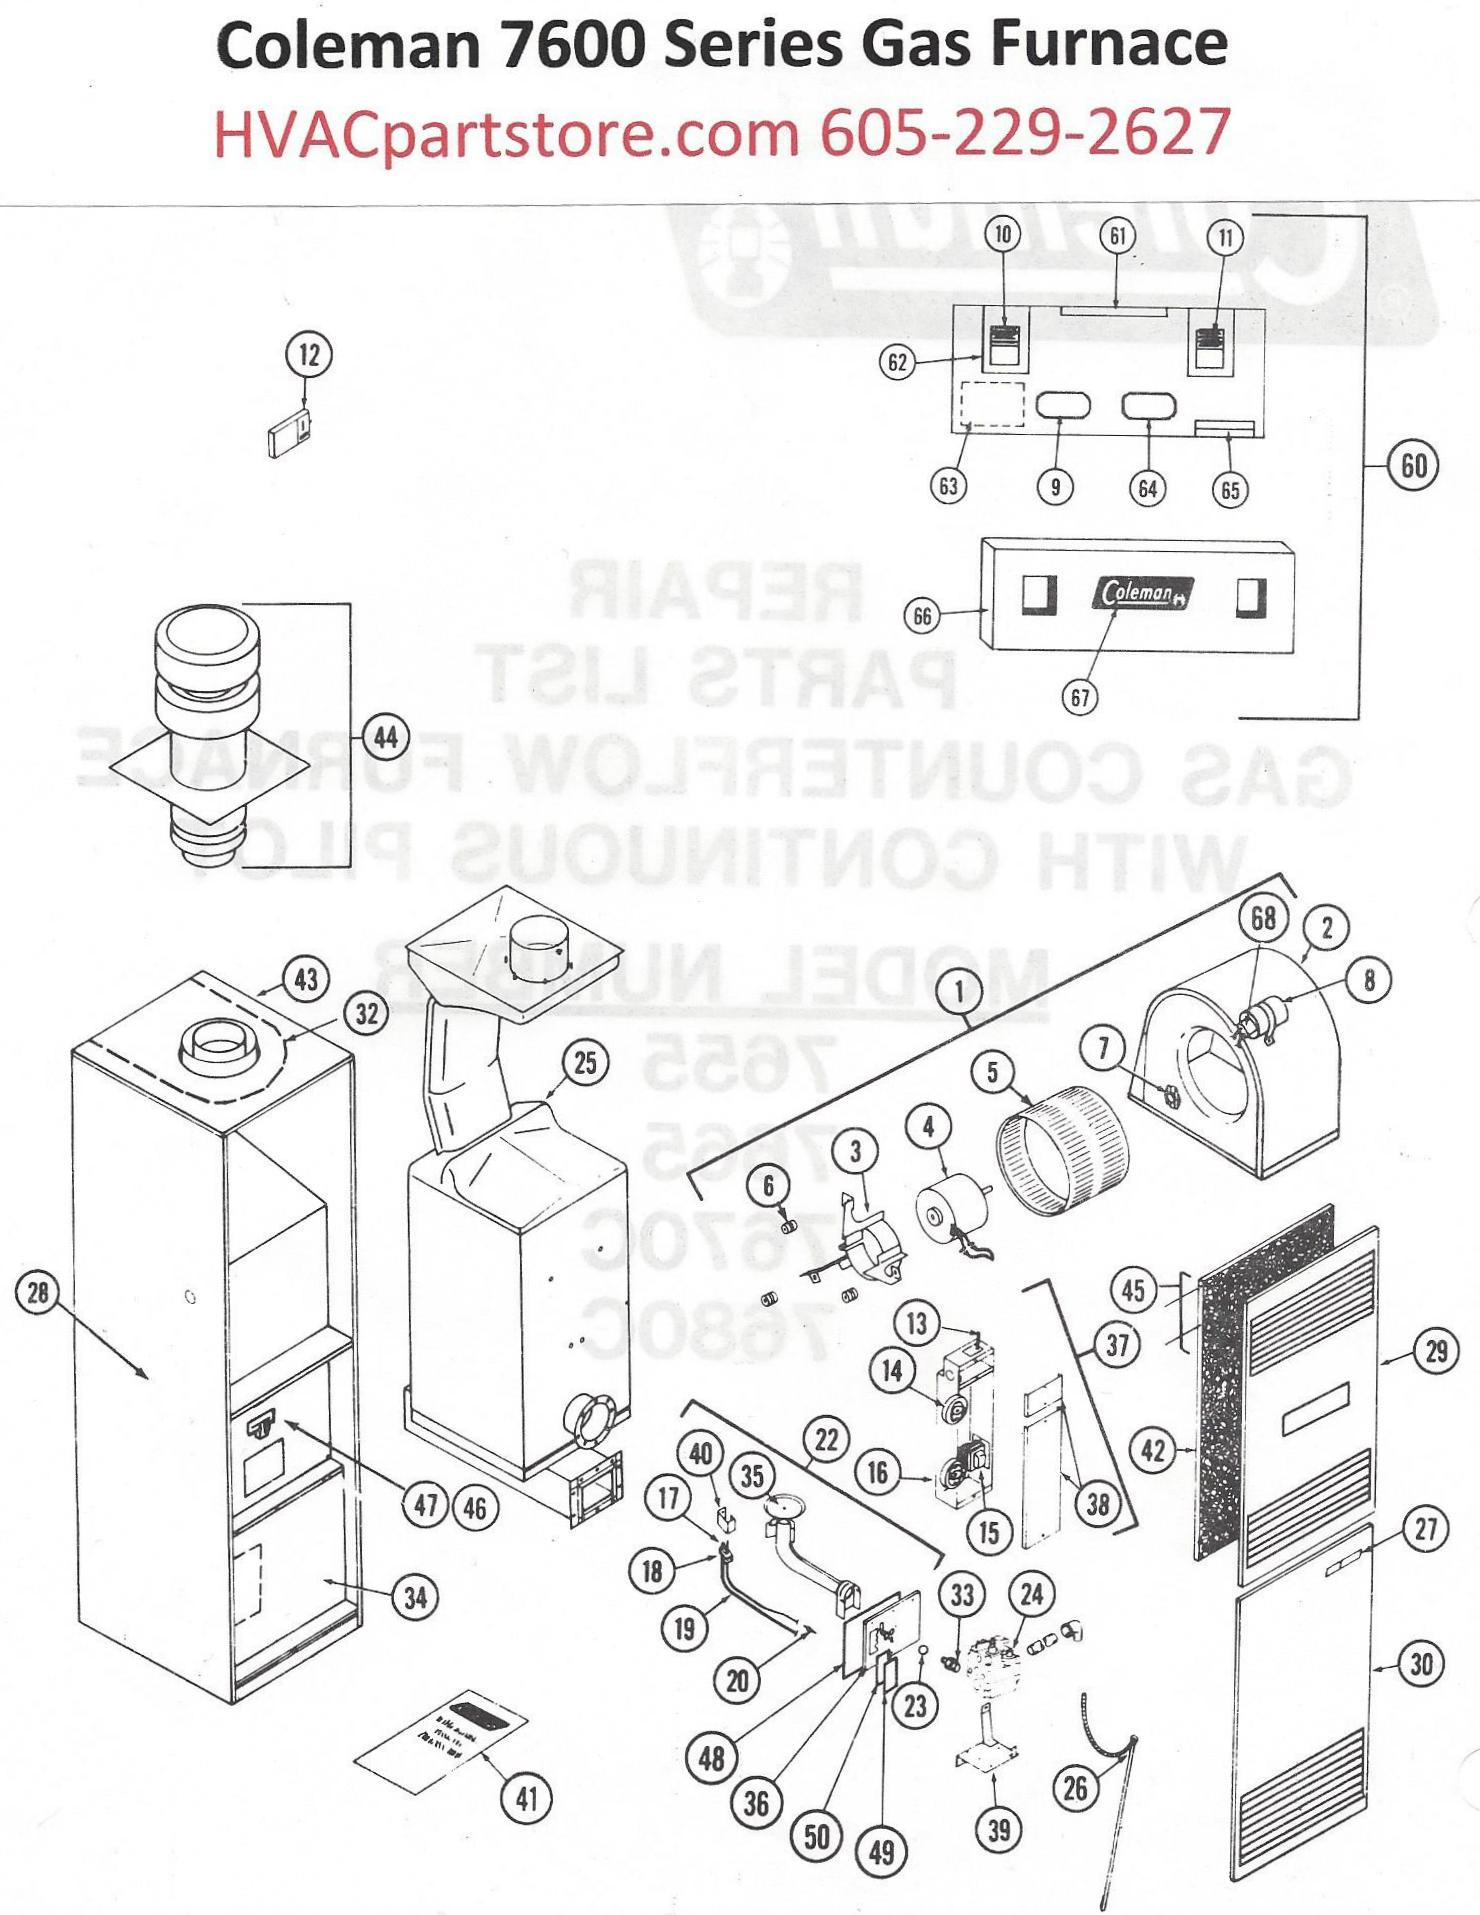 7655 856 coleman gas furnace parts hvacpartstore click here to view a manual for the coleman 7655 856 which includes wiring diagrams asfbconference2016 Image collections